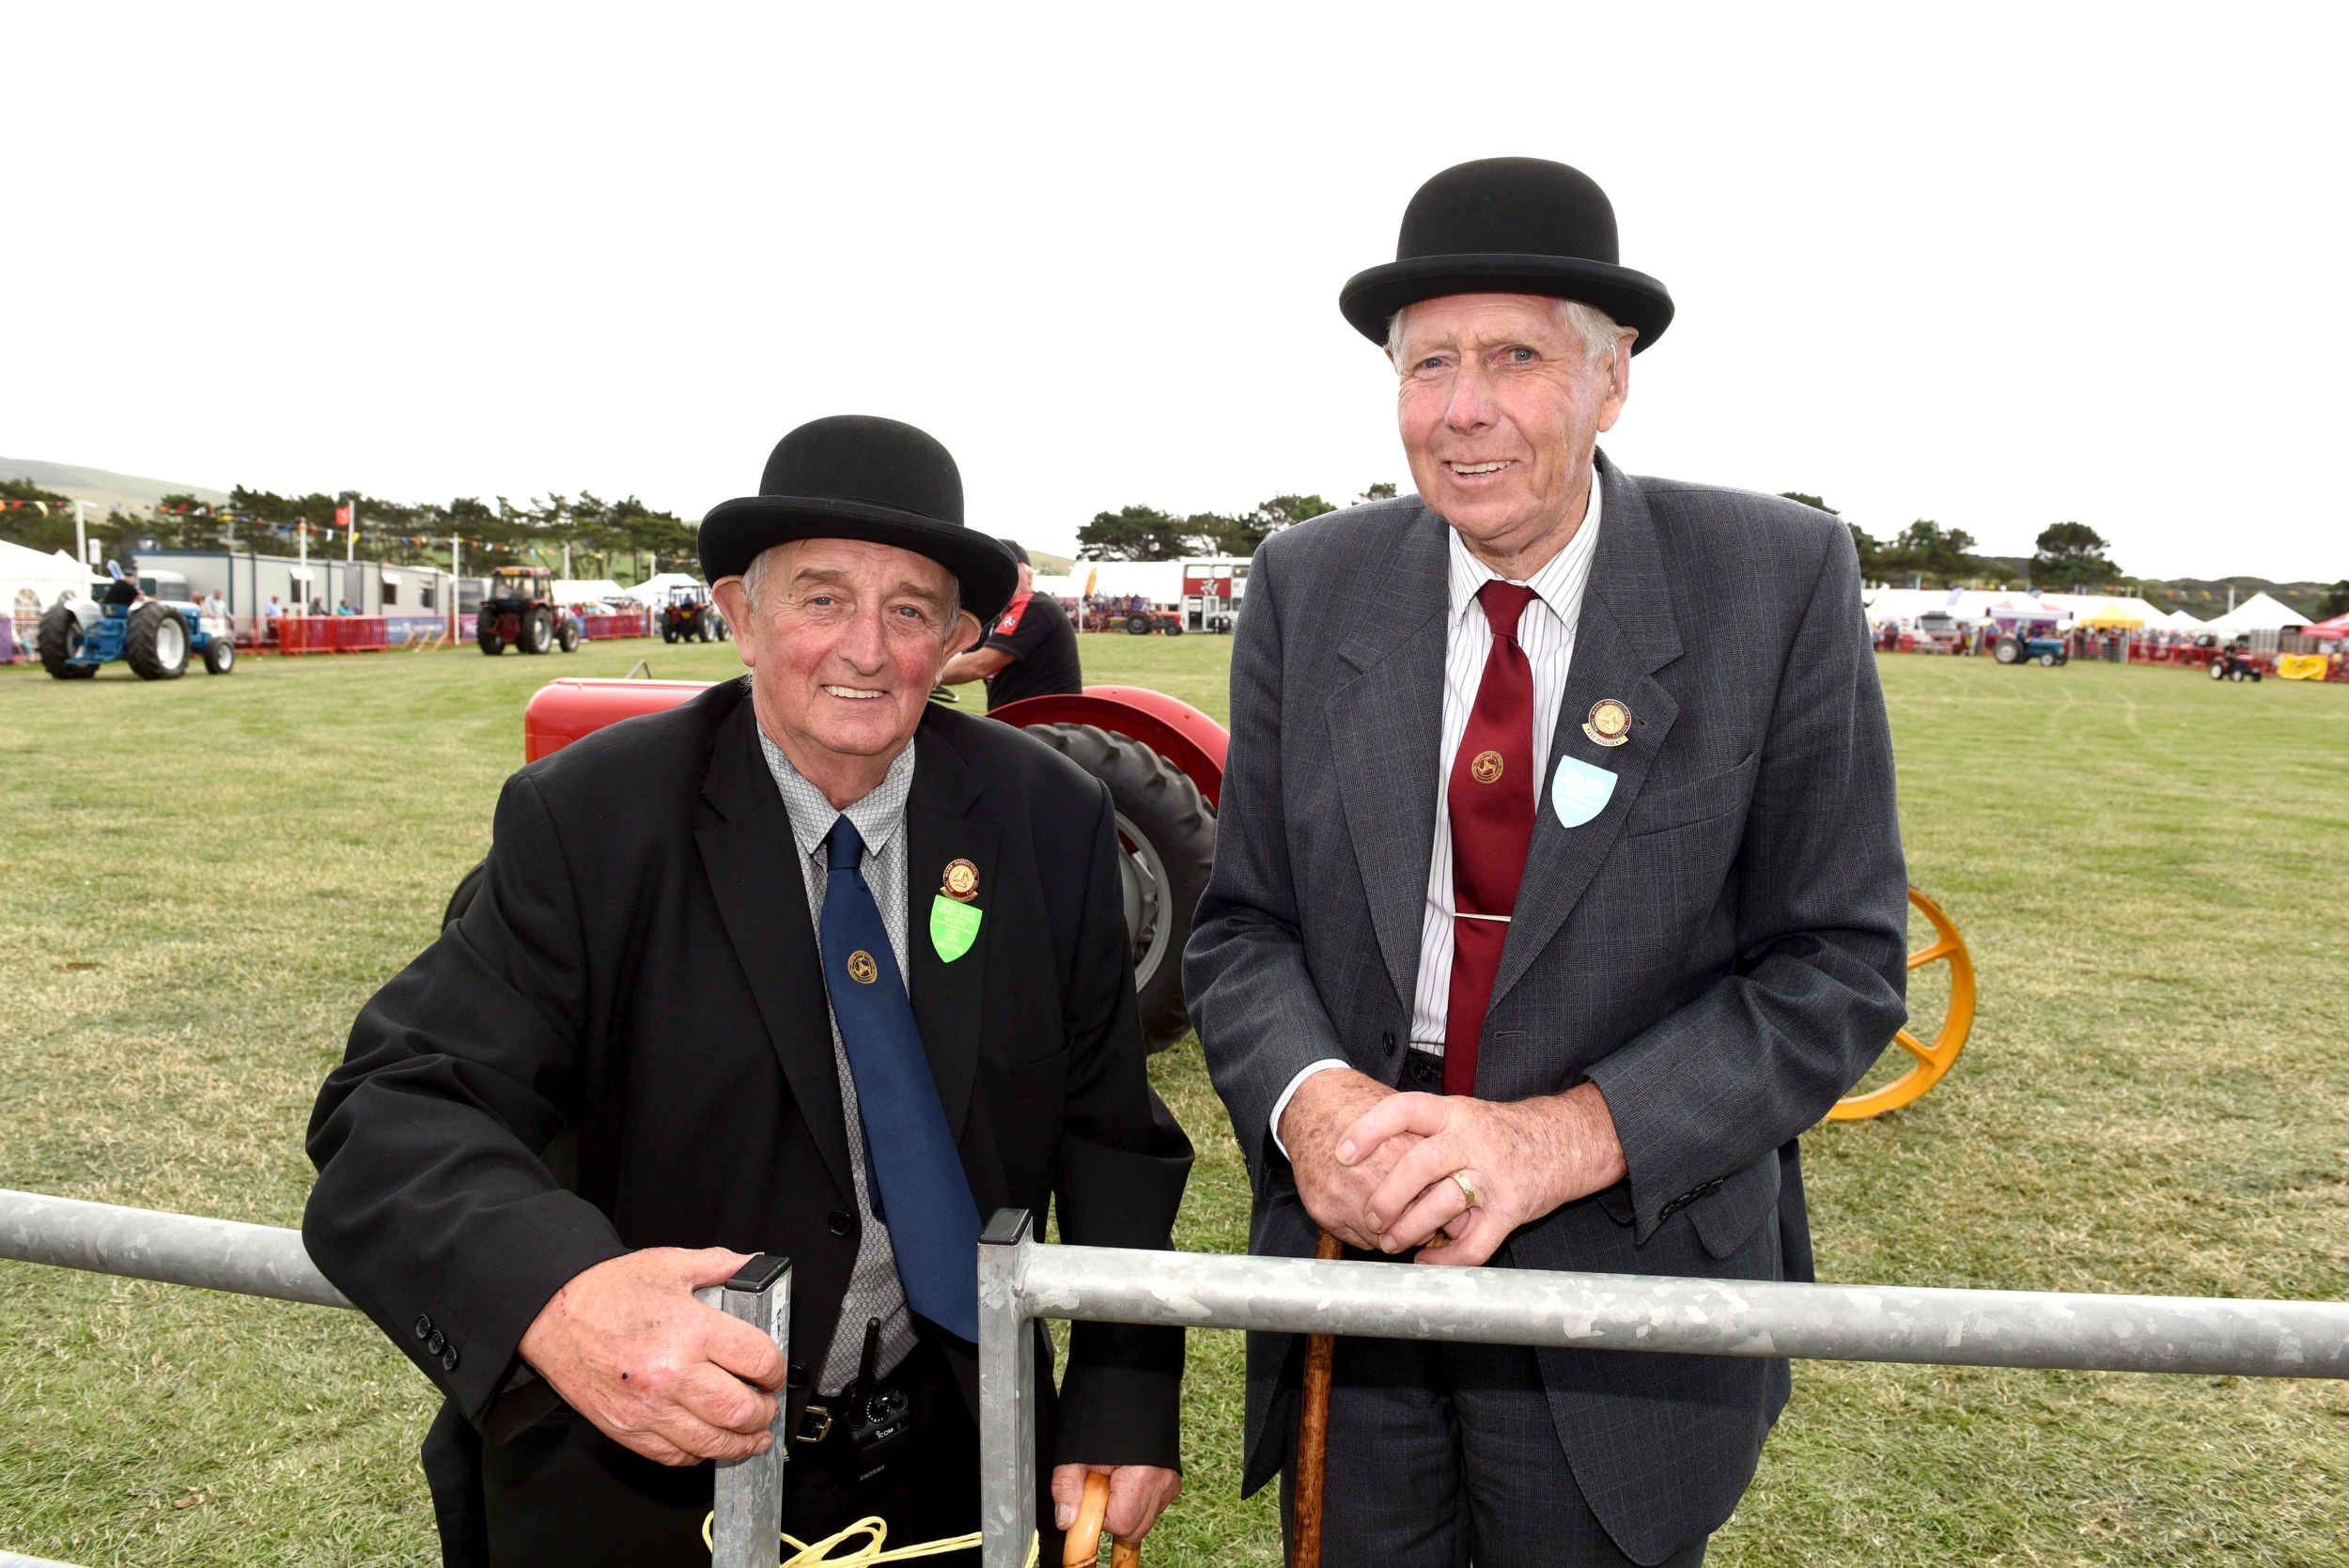 The Royal Manx Agricultural Society's Peter Dale and Norman Kelly at the 2018 Royal Manx Agricultural Show at Knockaloe